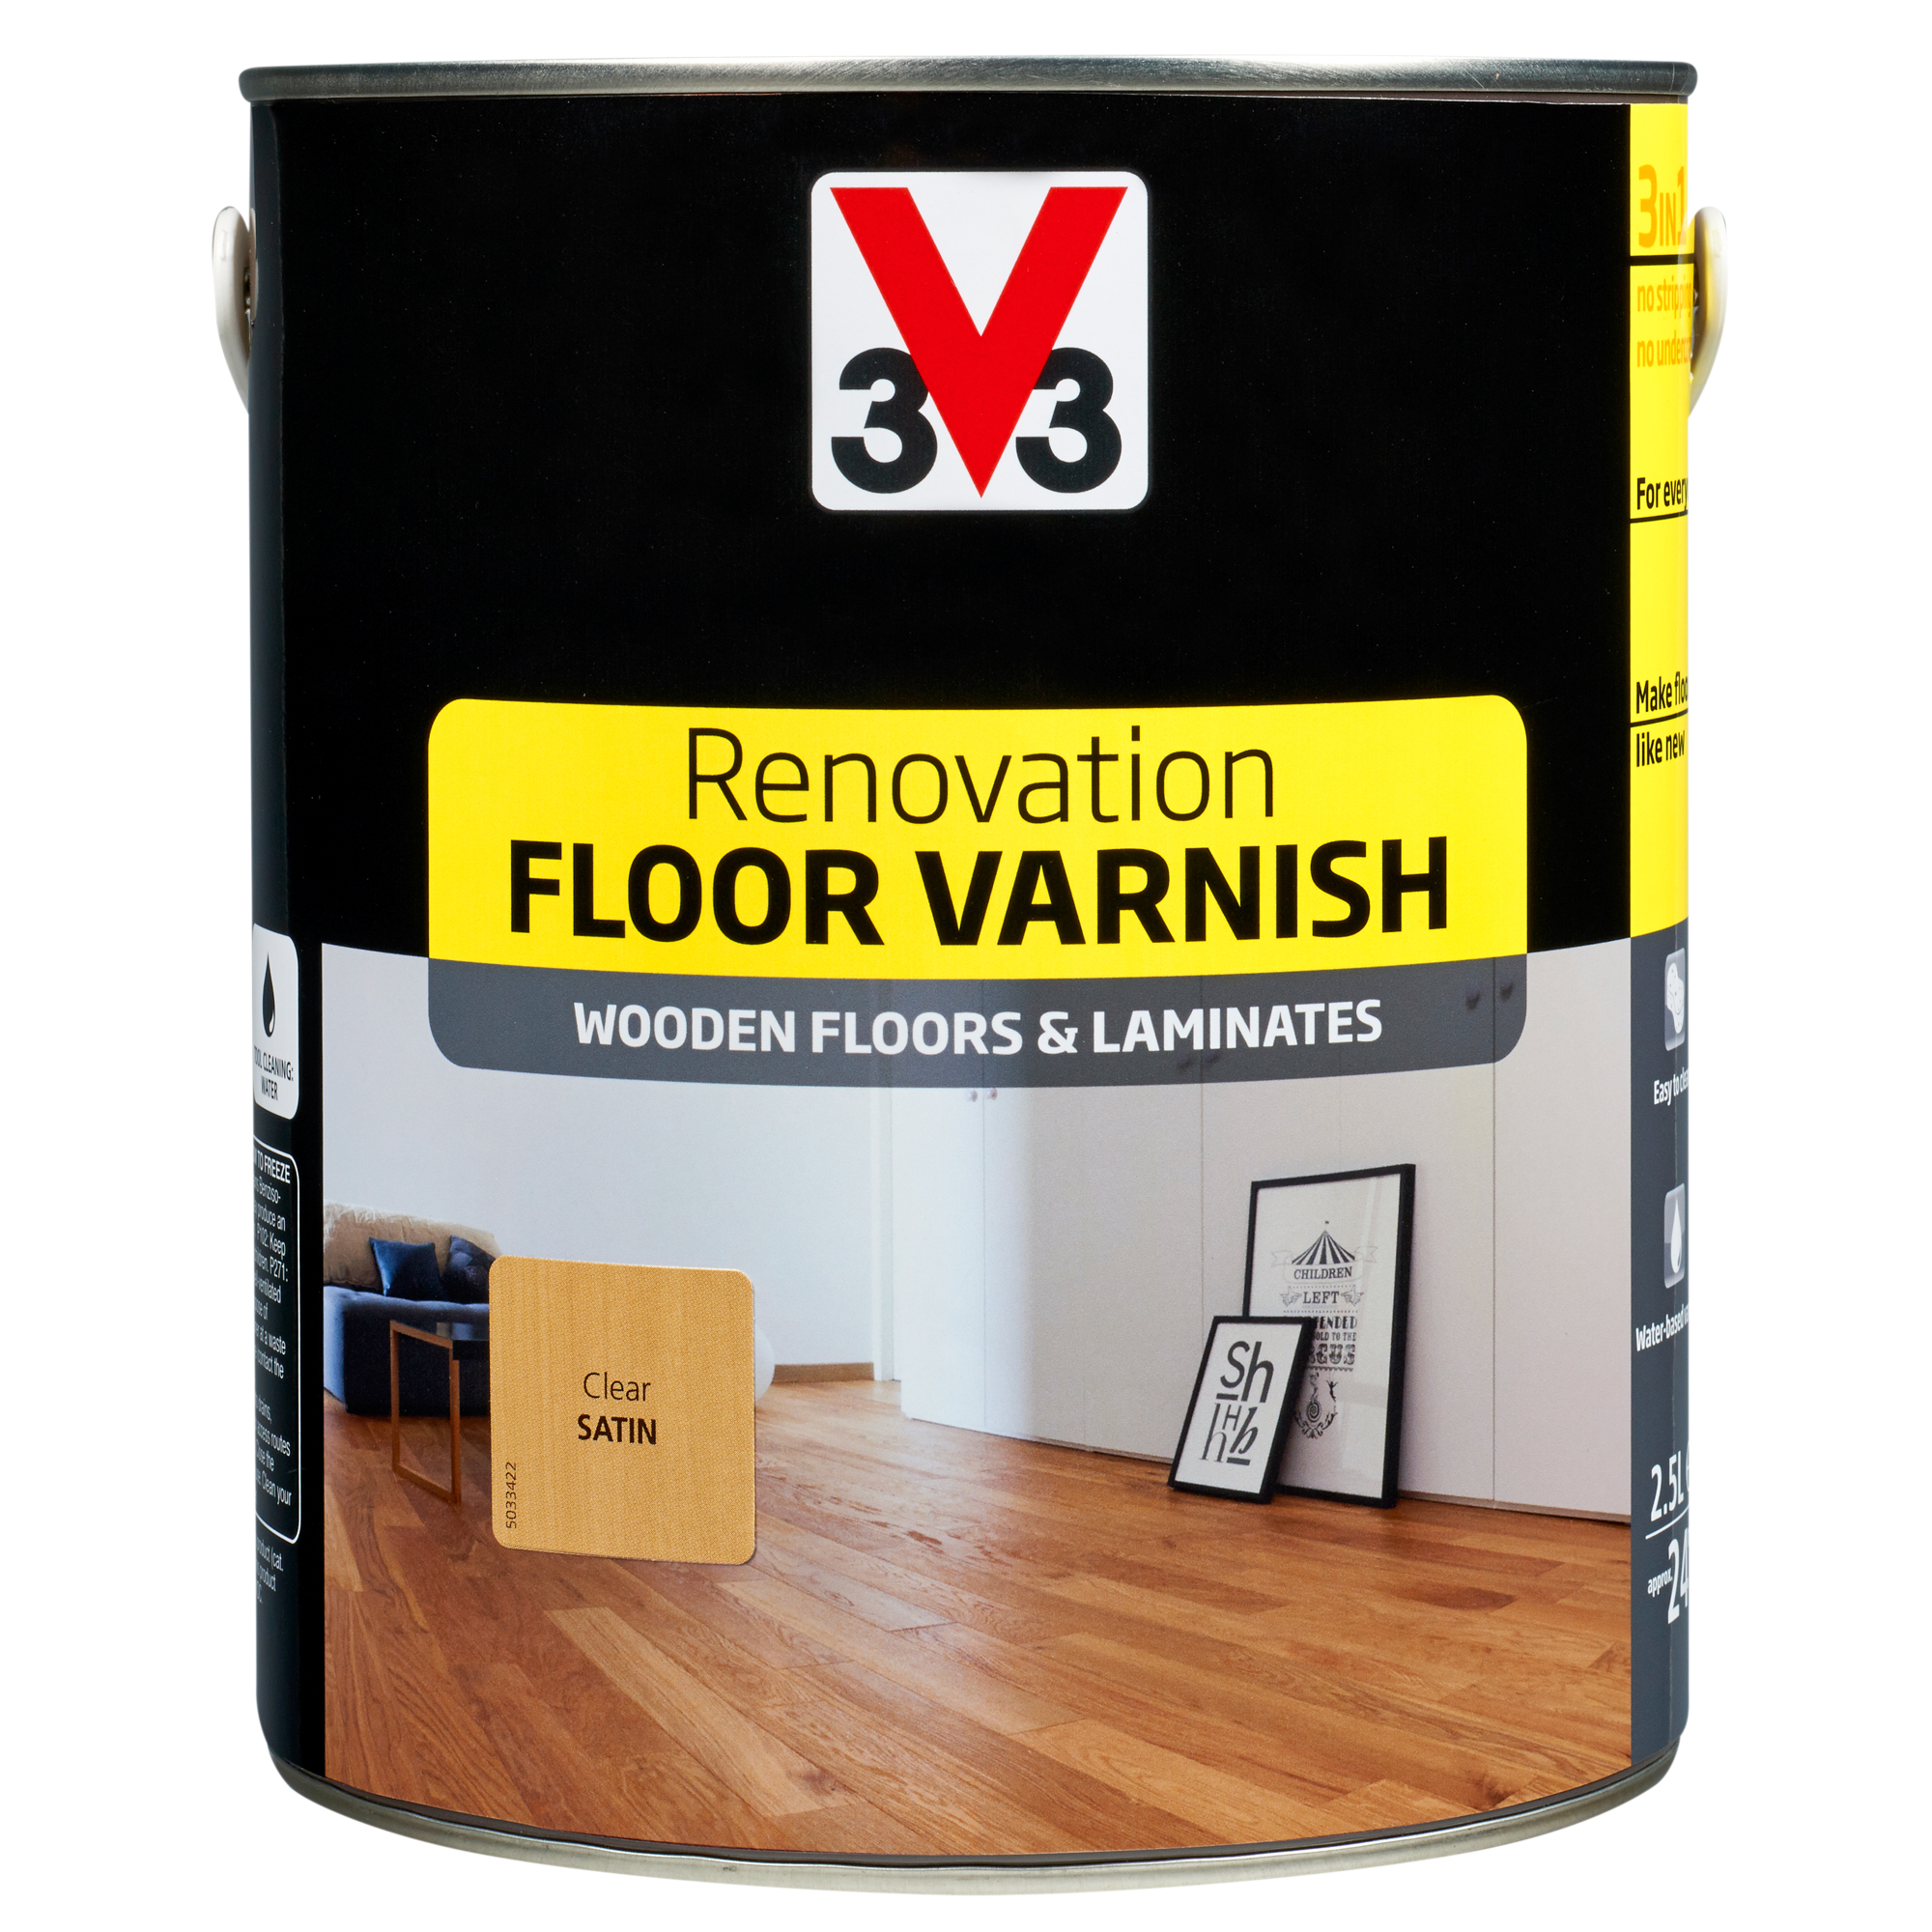 V33 Renovation Floor Varnish